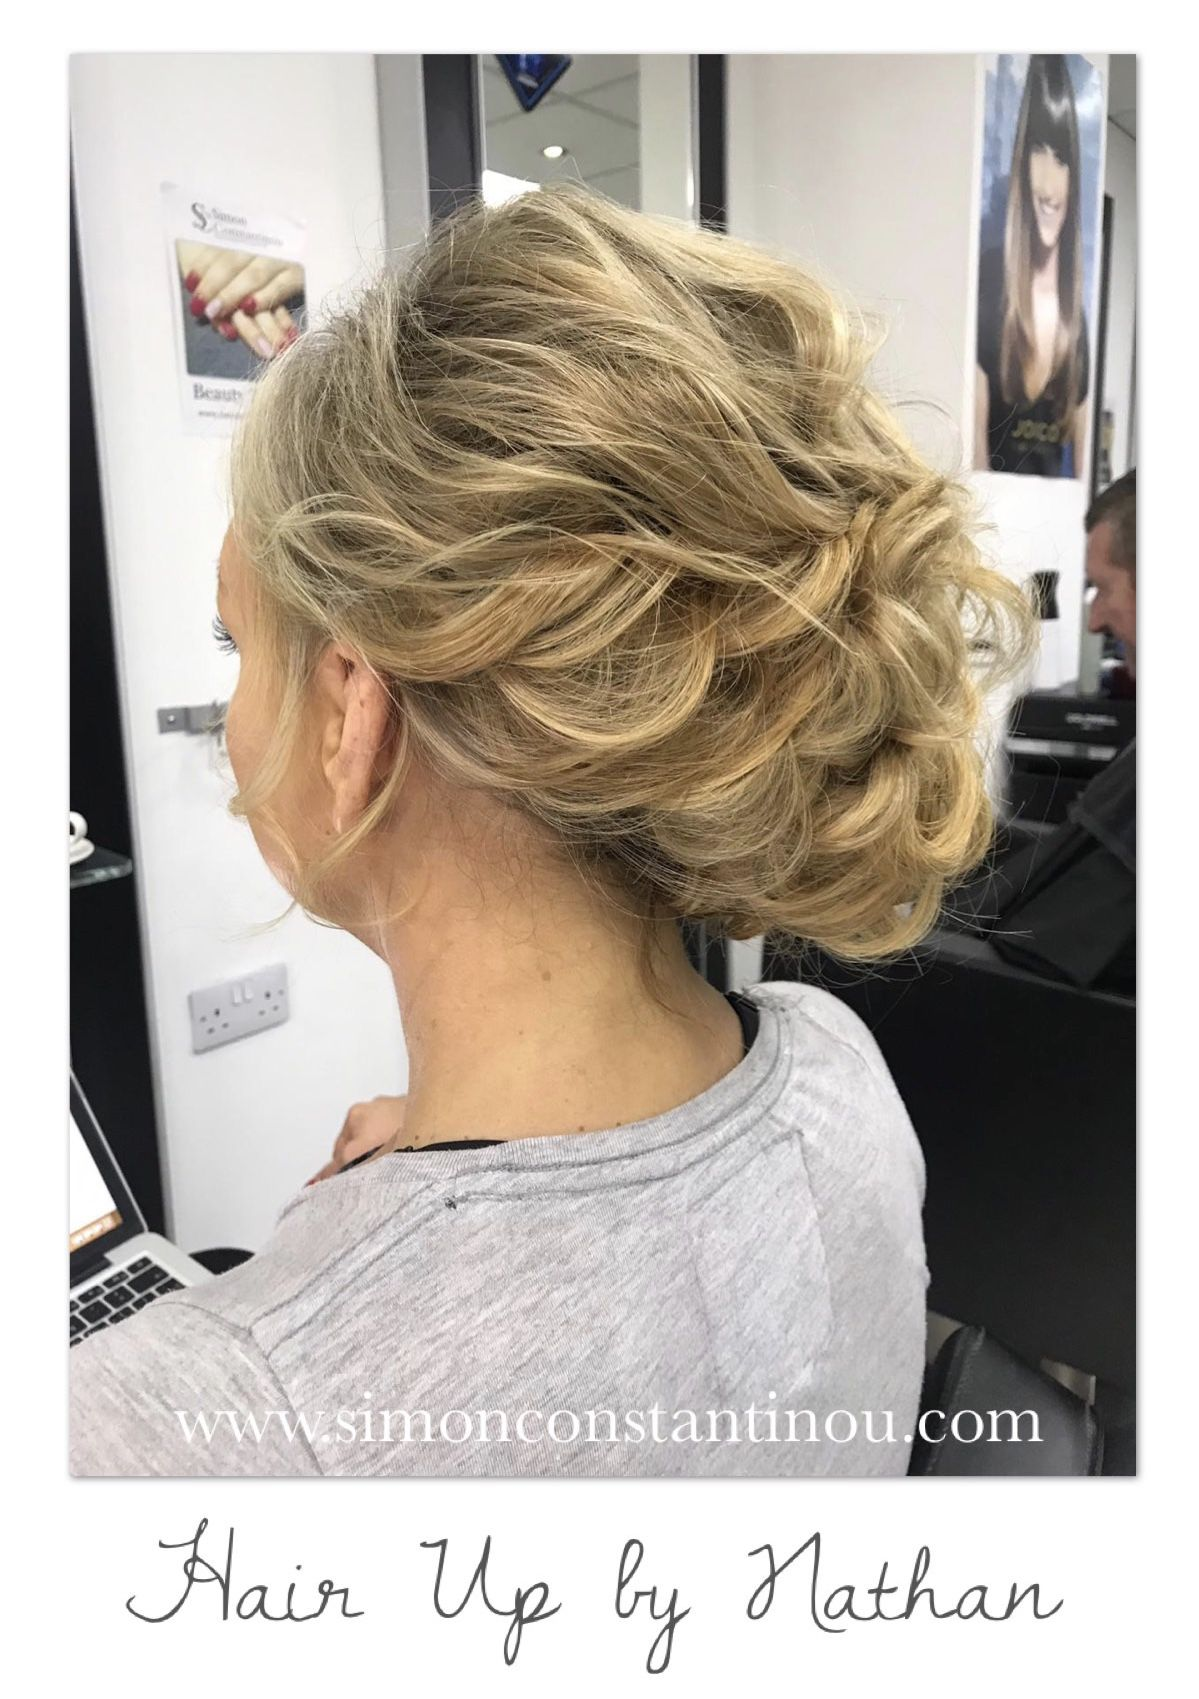 A Gorgeous Hair Up By Nathan Perfect For A Black Tie Event Book Your Hair Up With Nathan Or One Of Our Hair And Beauty Salon Ball Hairstyles Gorgeous Hair